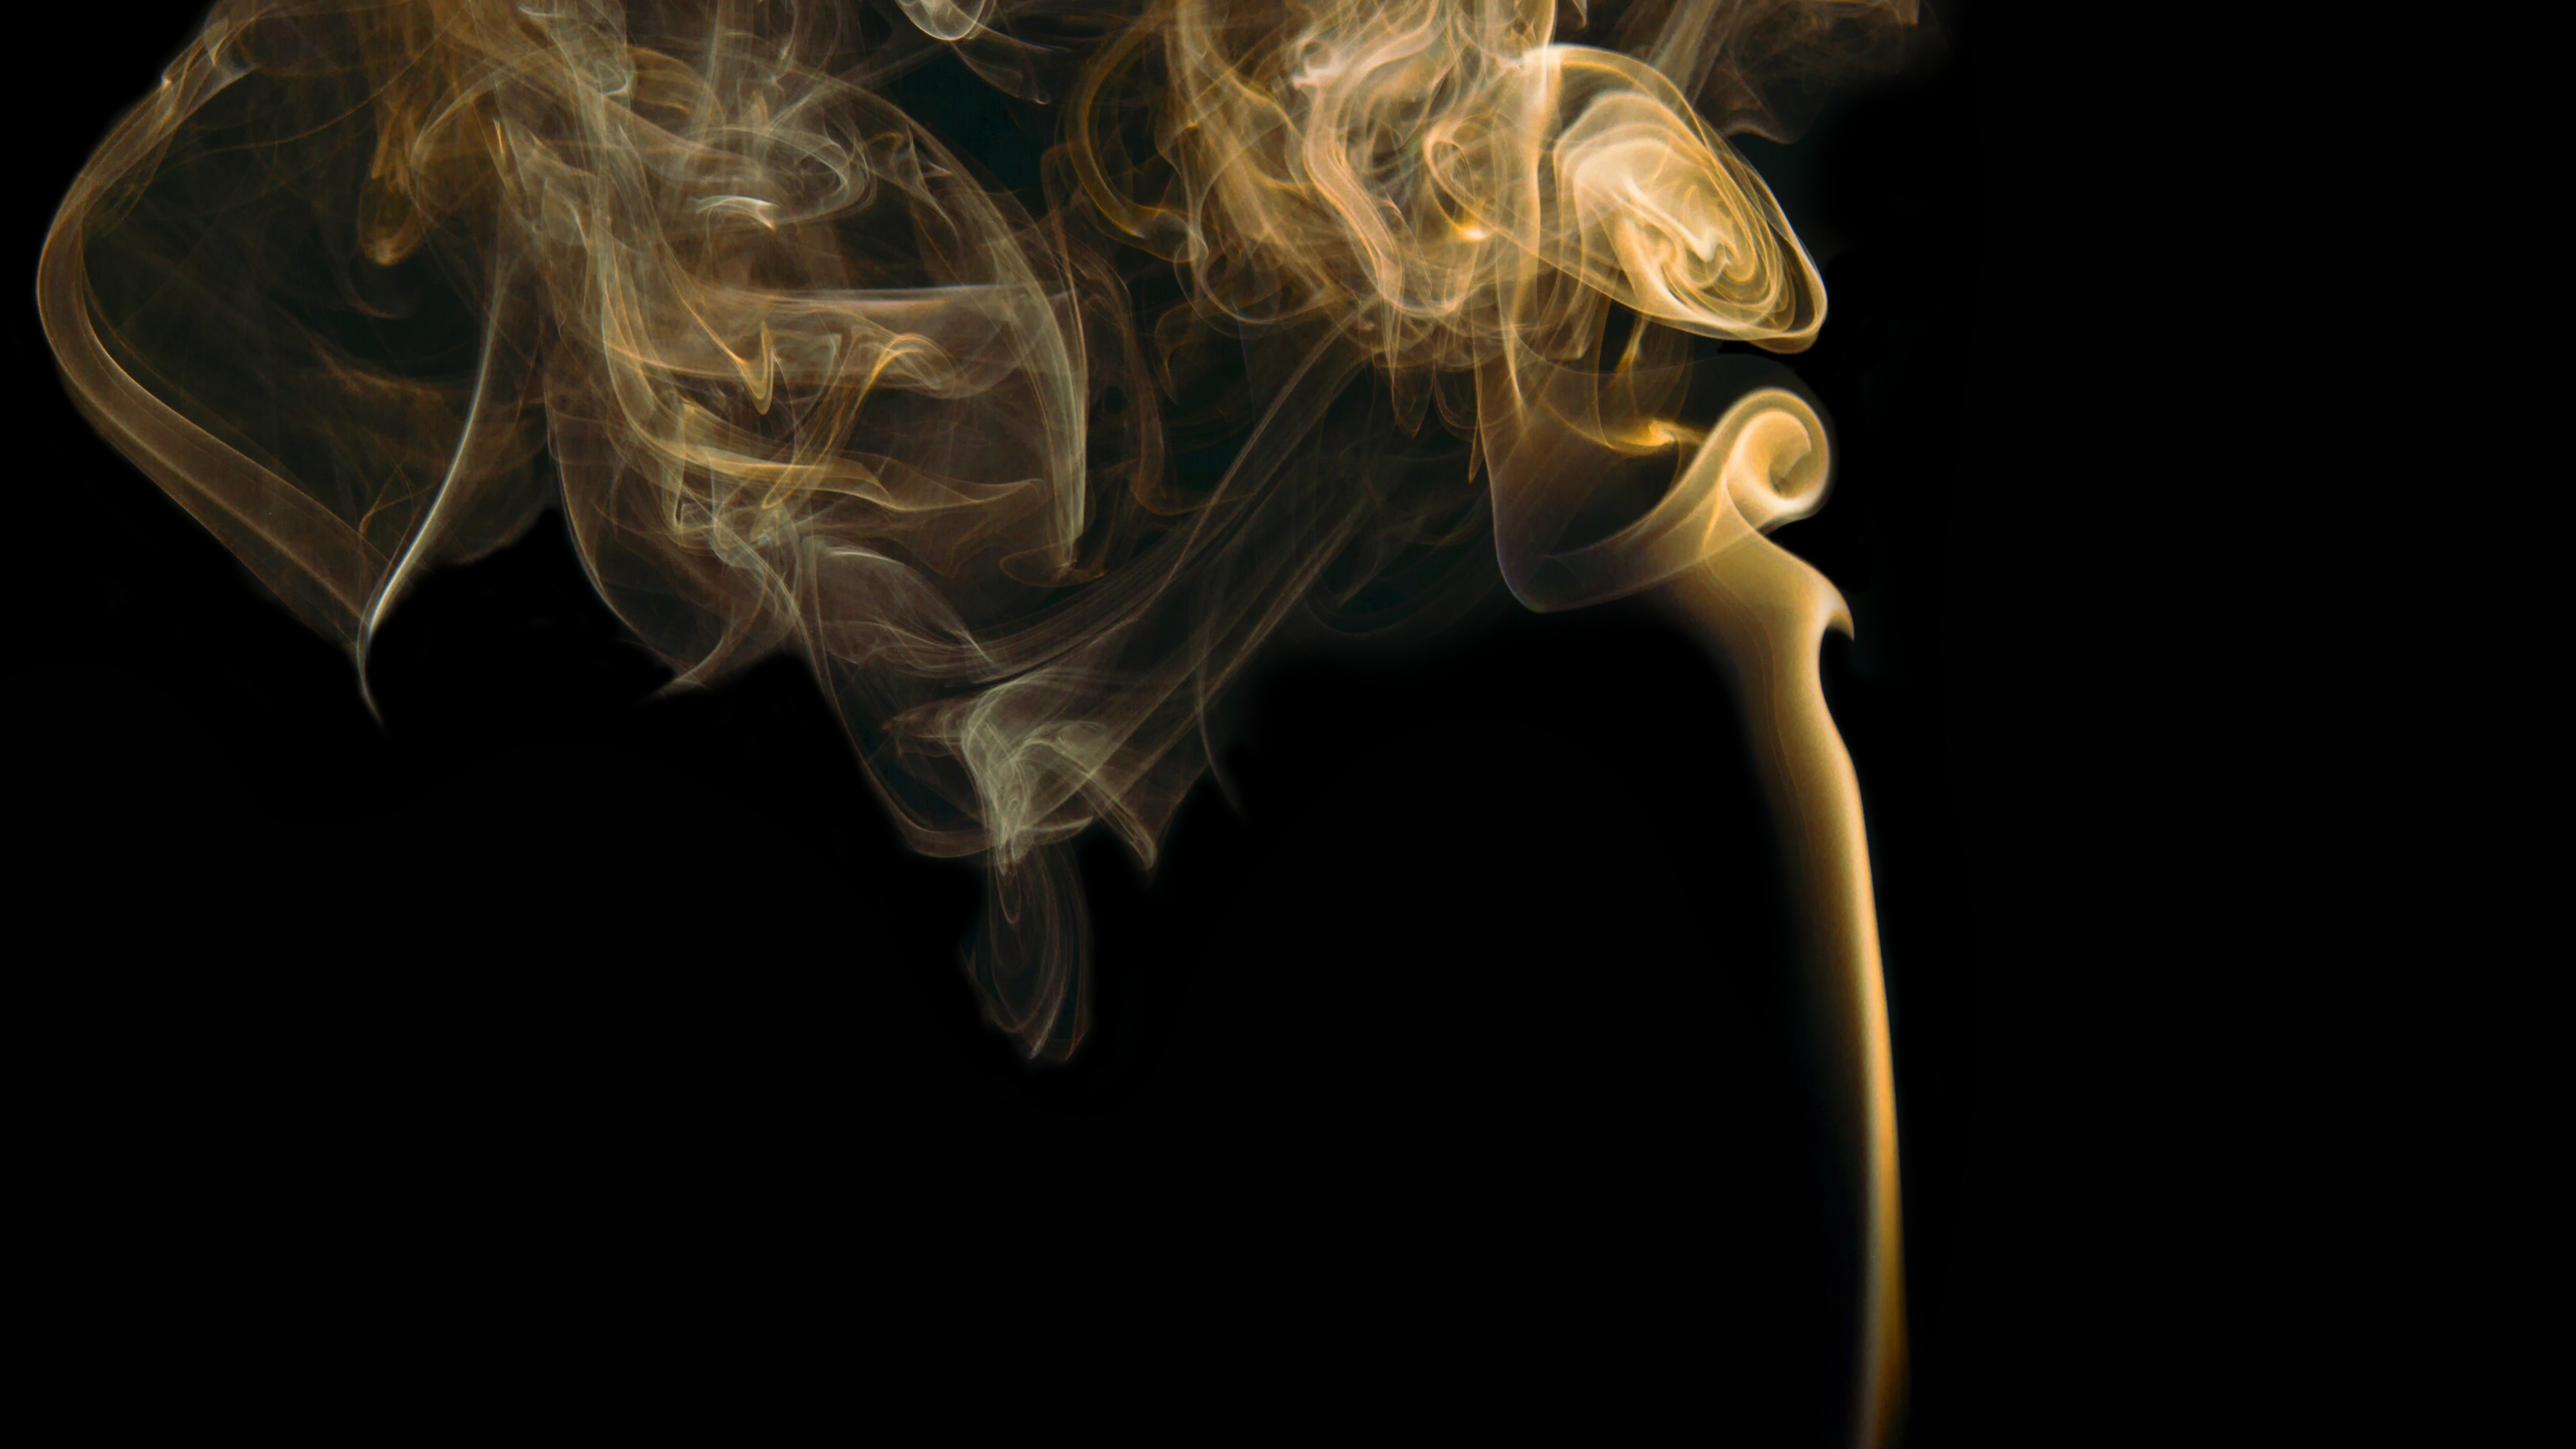 Smoke Abstract 3d Wallpaper For Desktop And Mobiles 4k Ultra